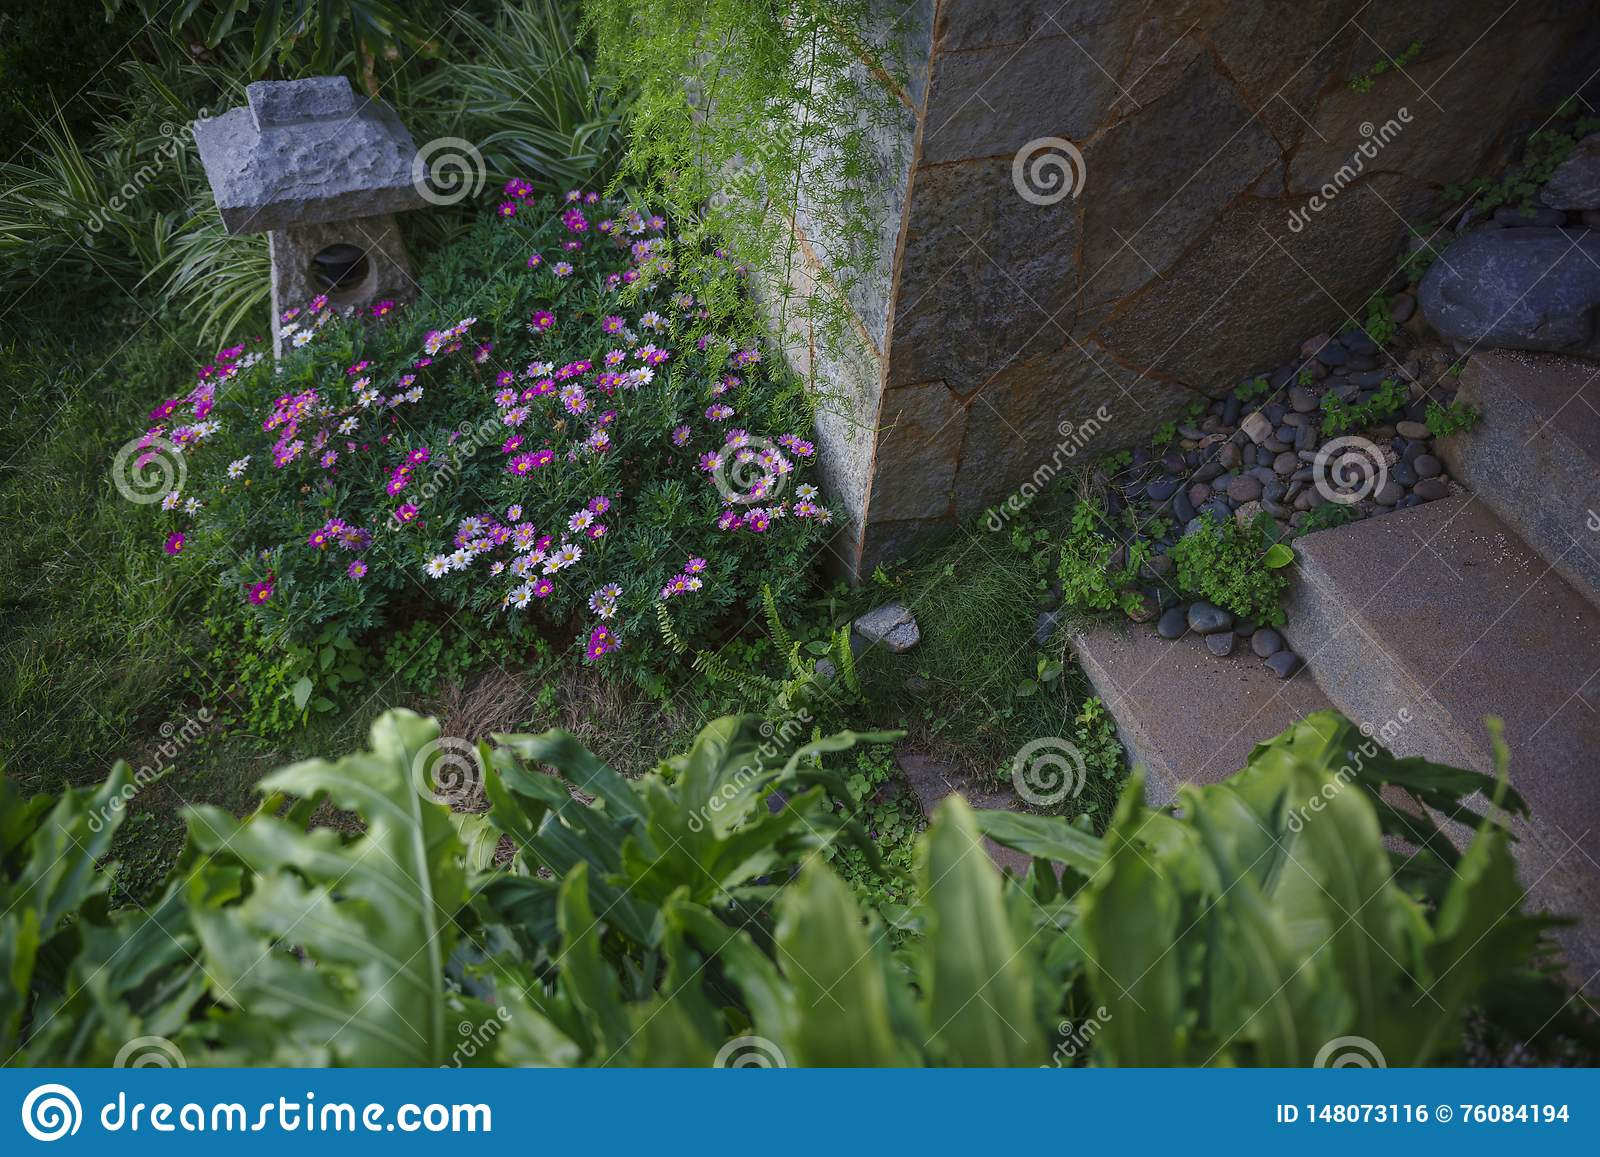 Inn Garden Design Stock Photo Image Of Flowers Garden 148073116